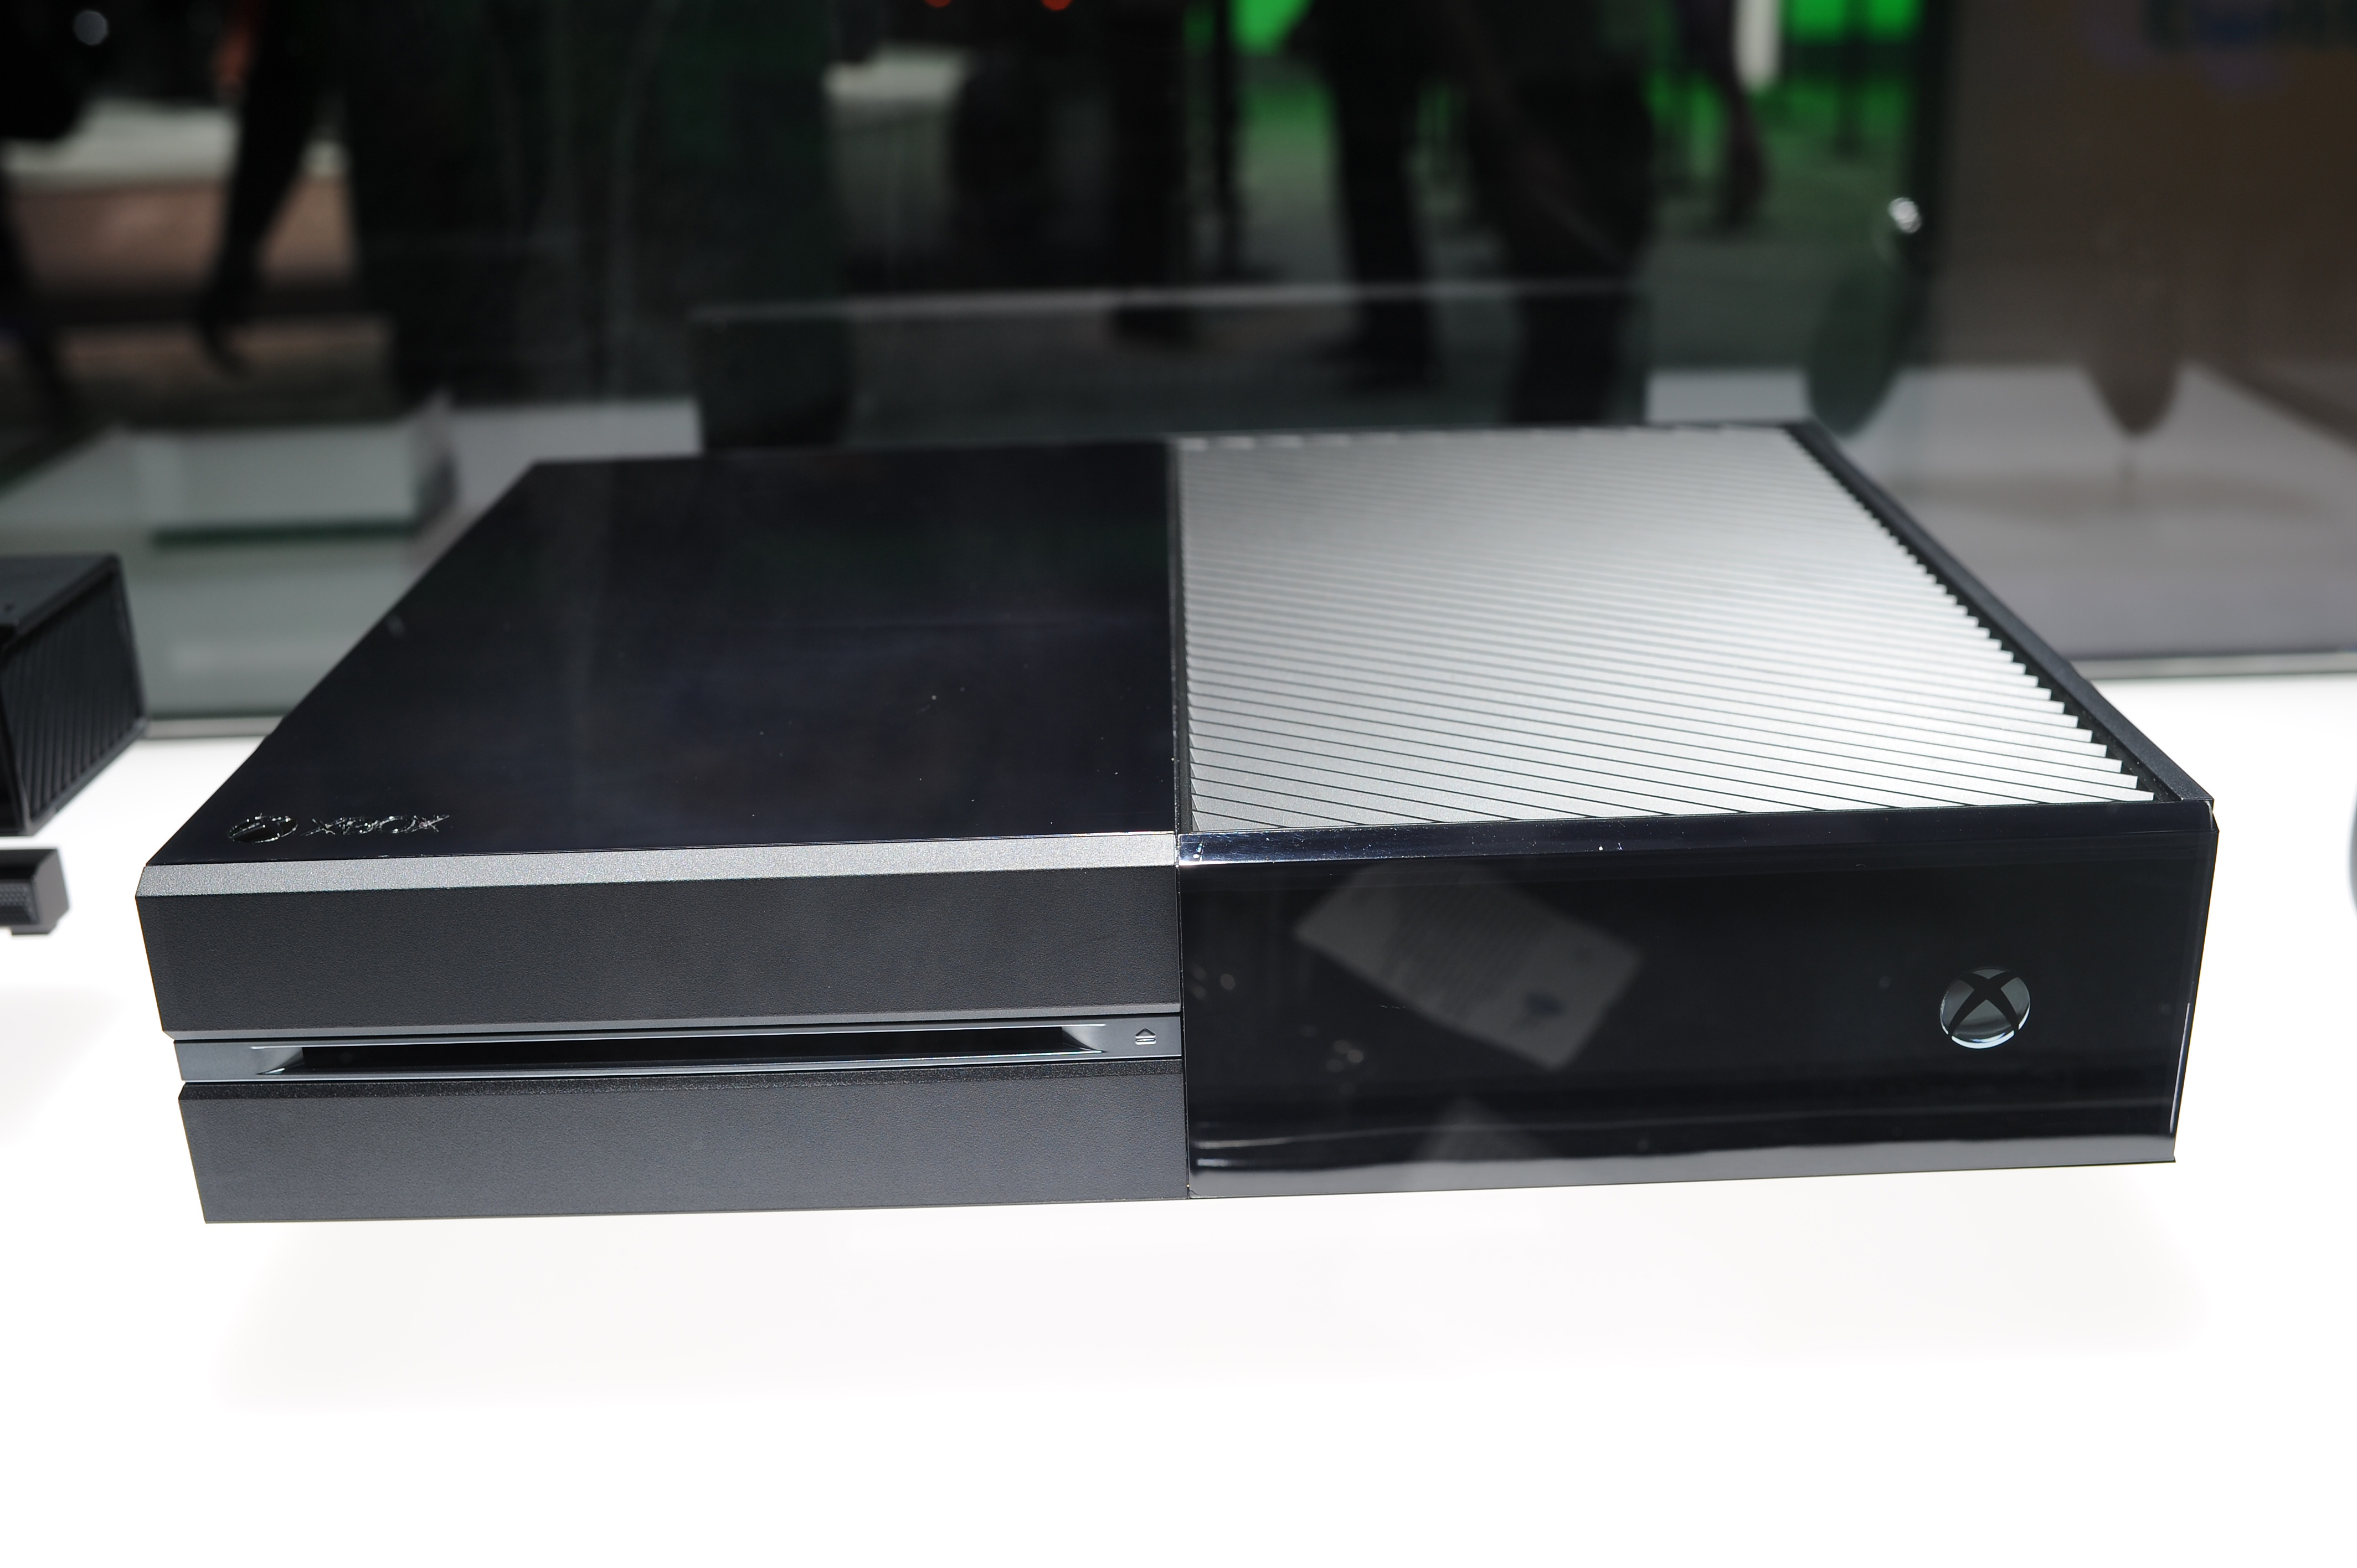 Microsoft Launches Xbox One without Kinect for $399.99